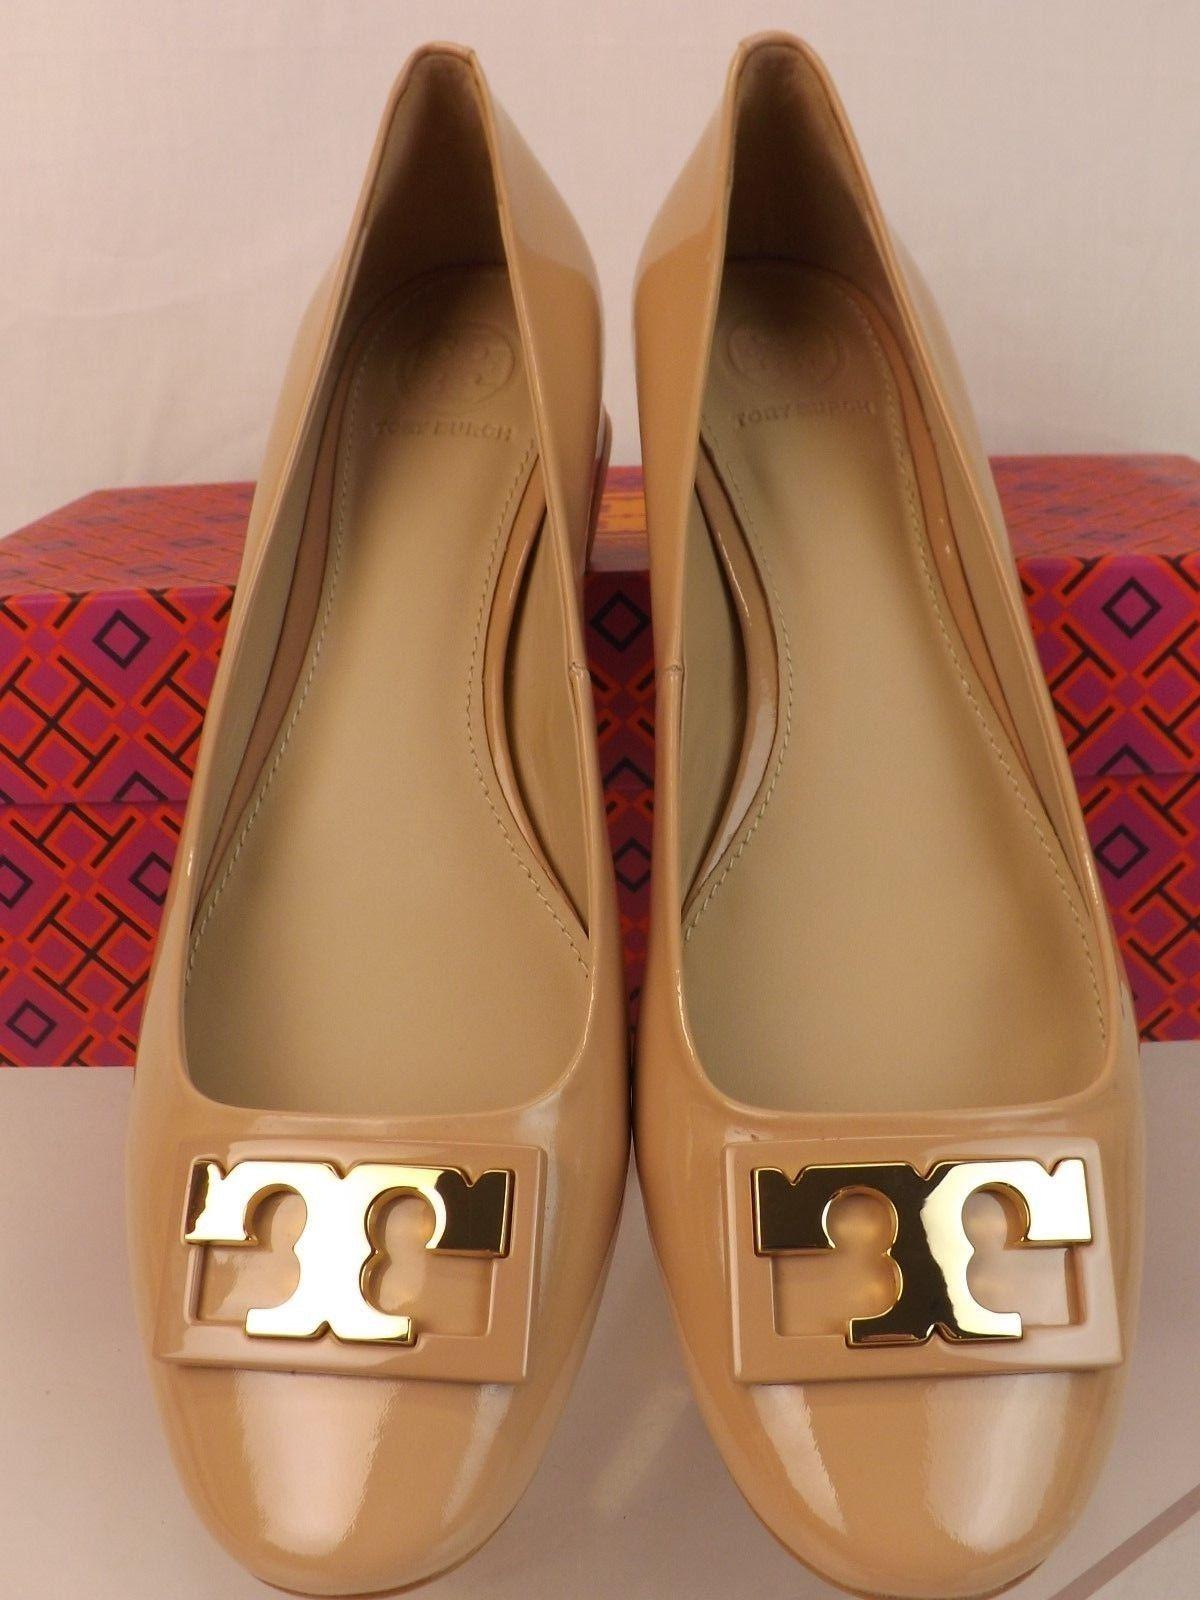 440315febf12 ... Tory Burch Beige Gigi T Patent Leather Gold Gold Gold Buckle Reva Low Pumps  Size US ...